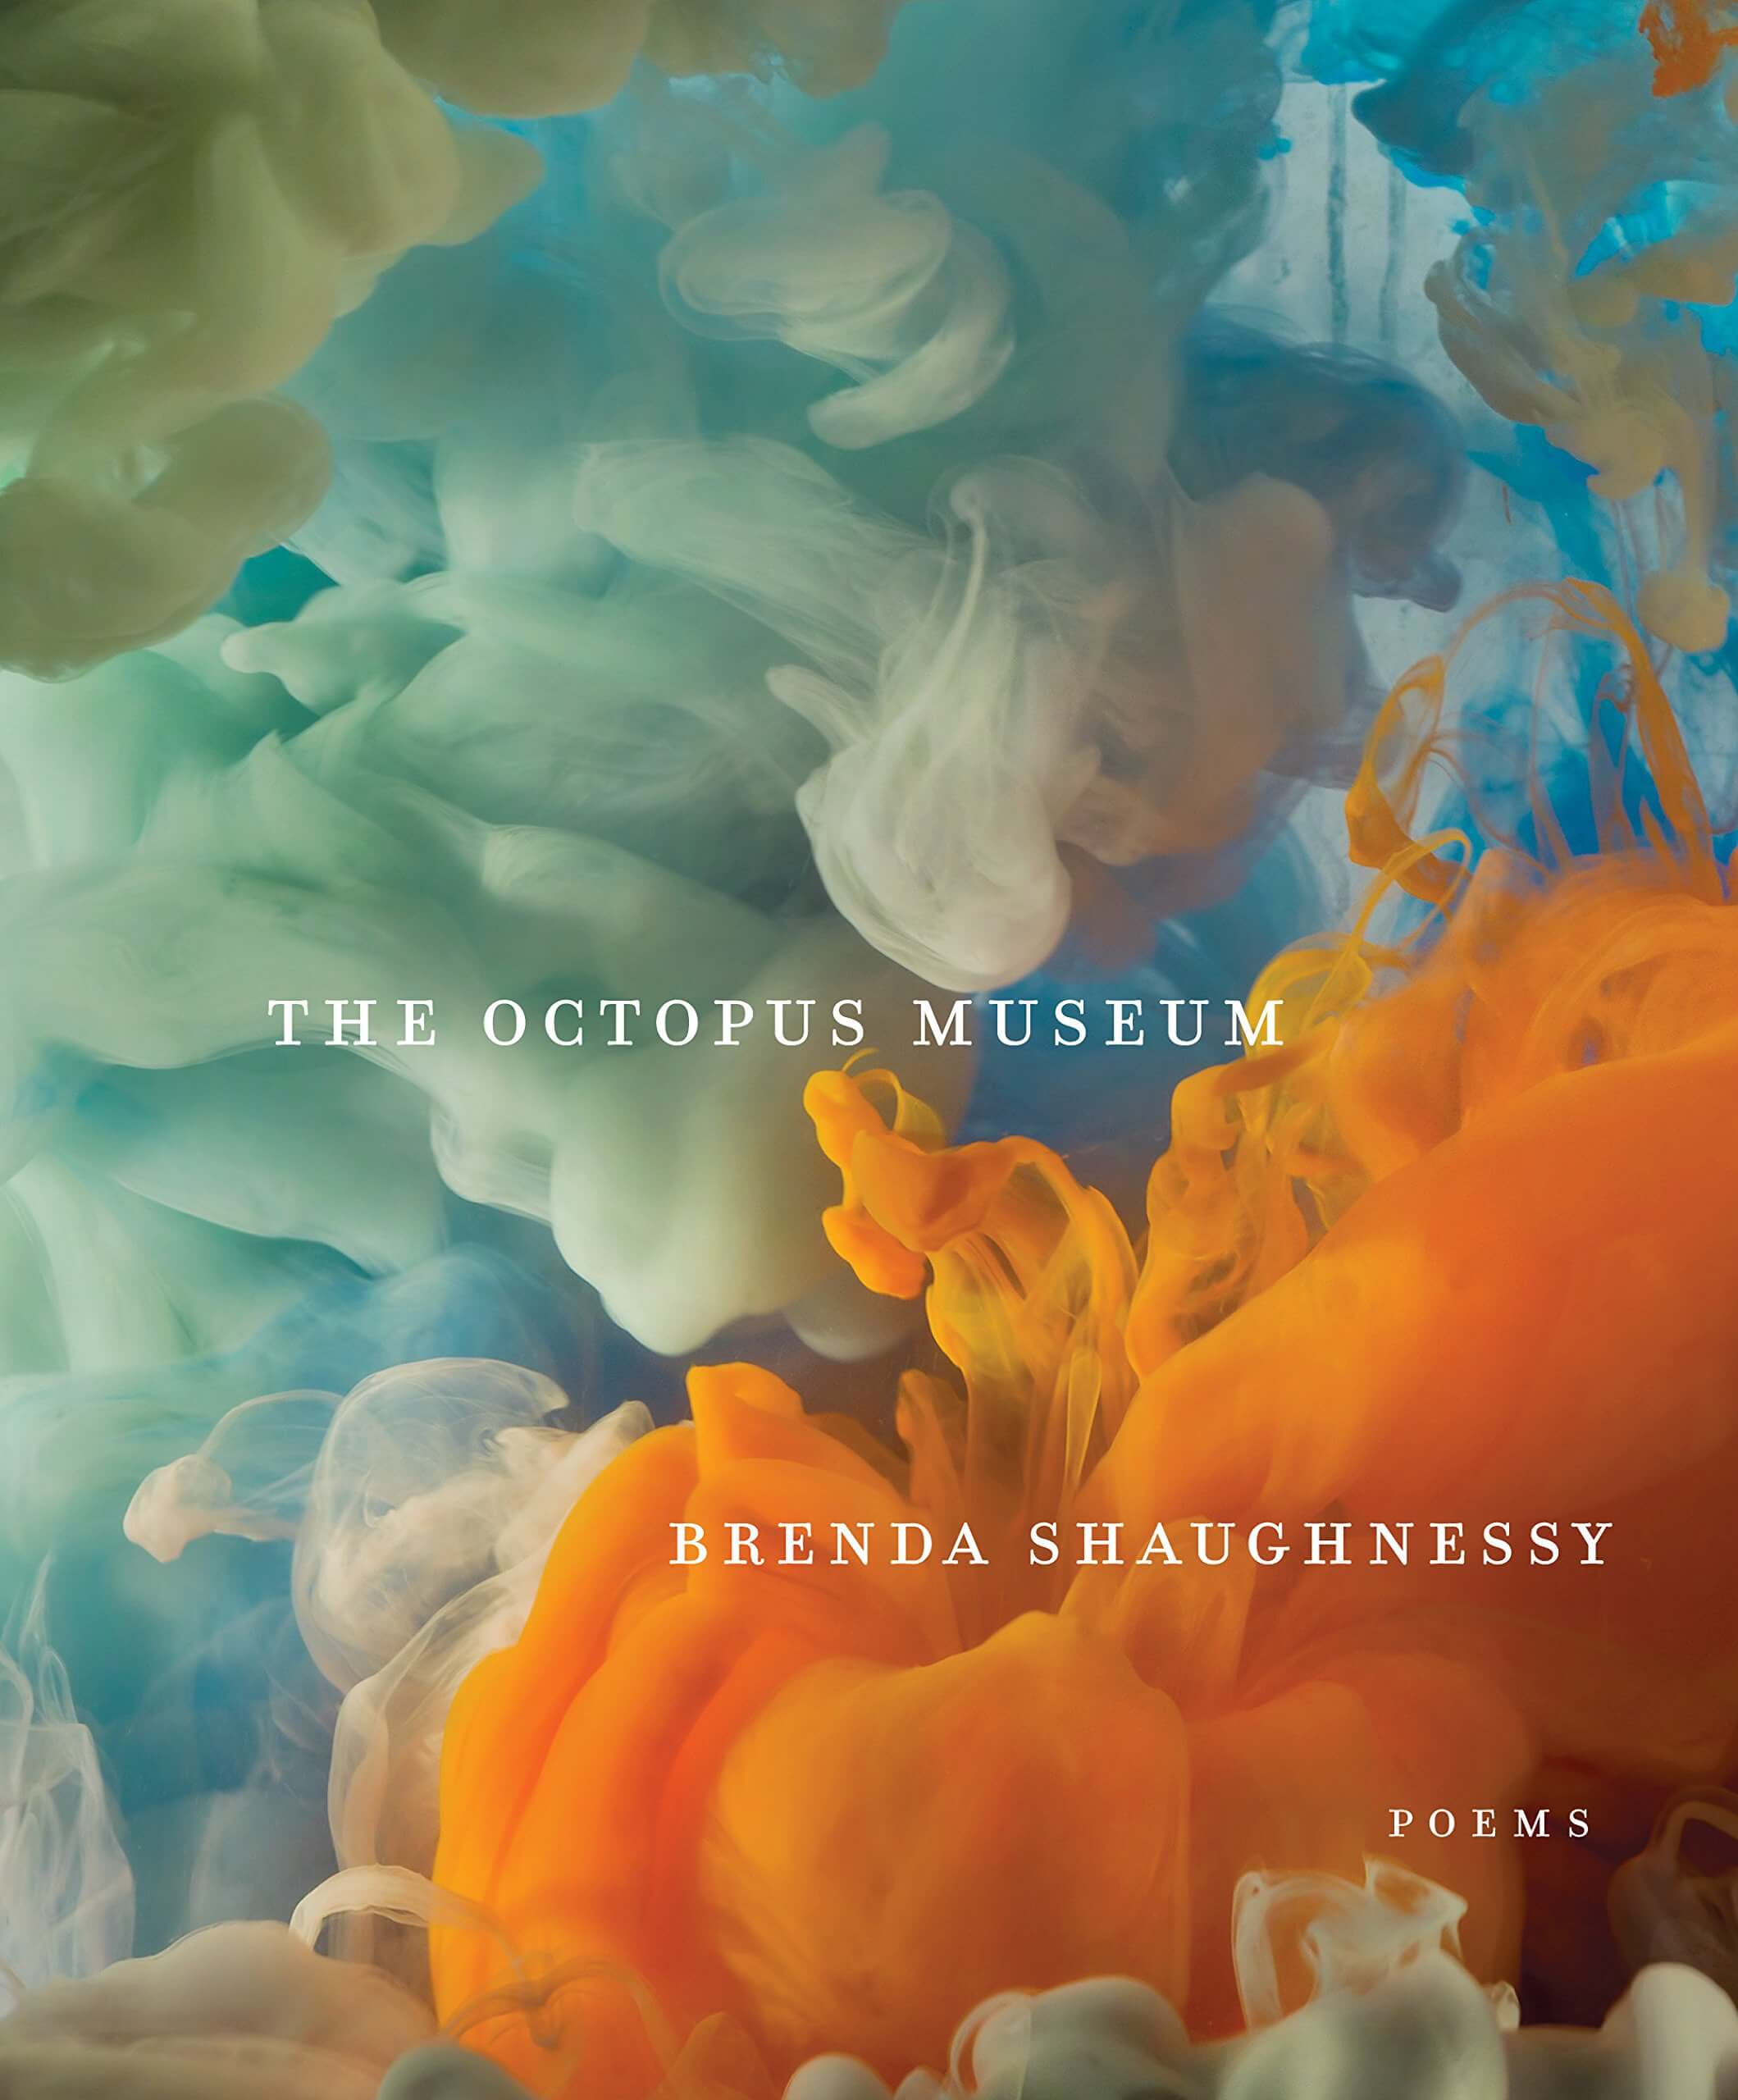 The Octopus Museum book cover image